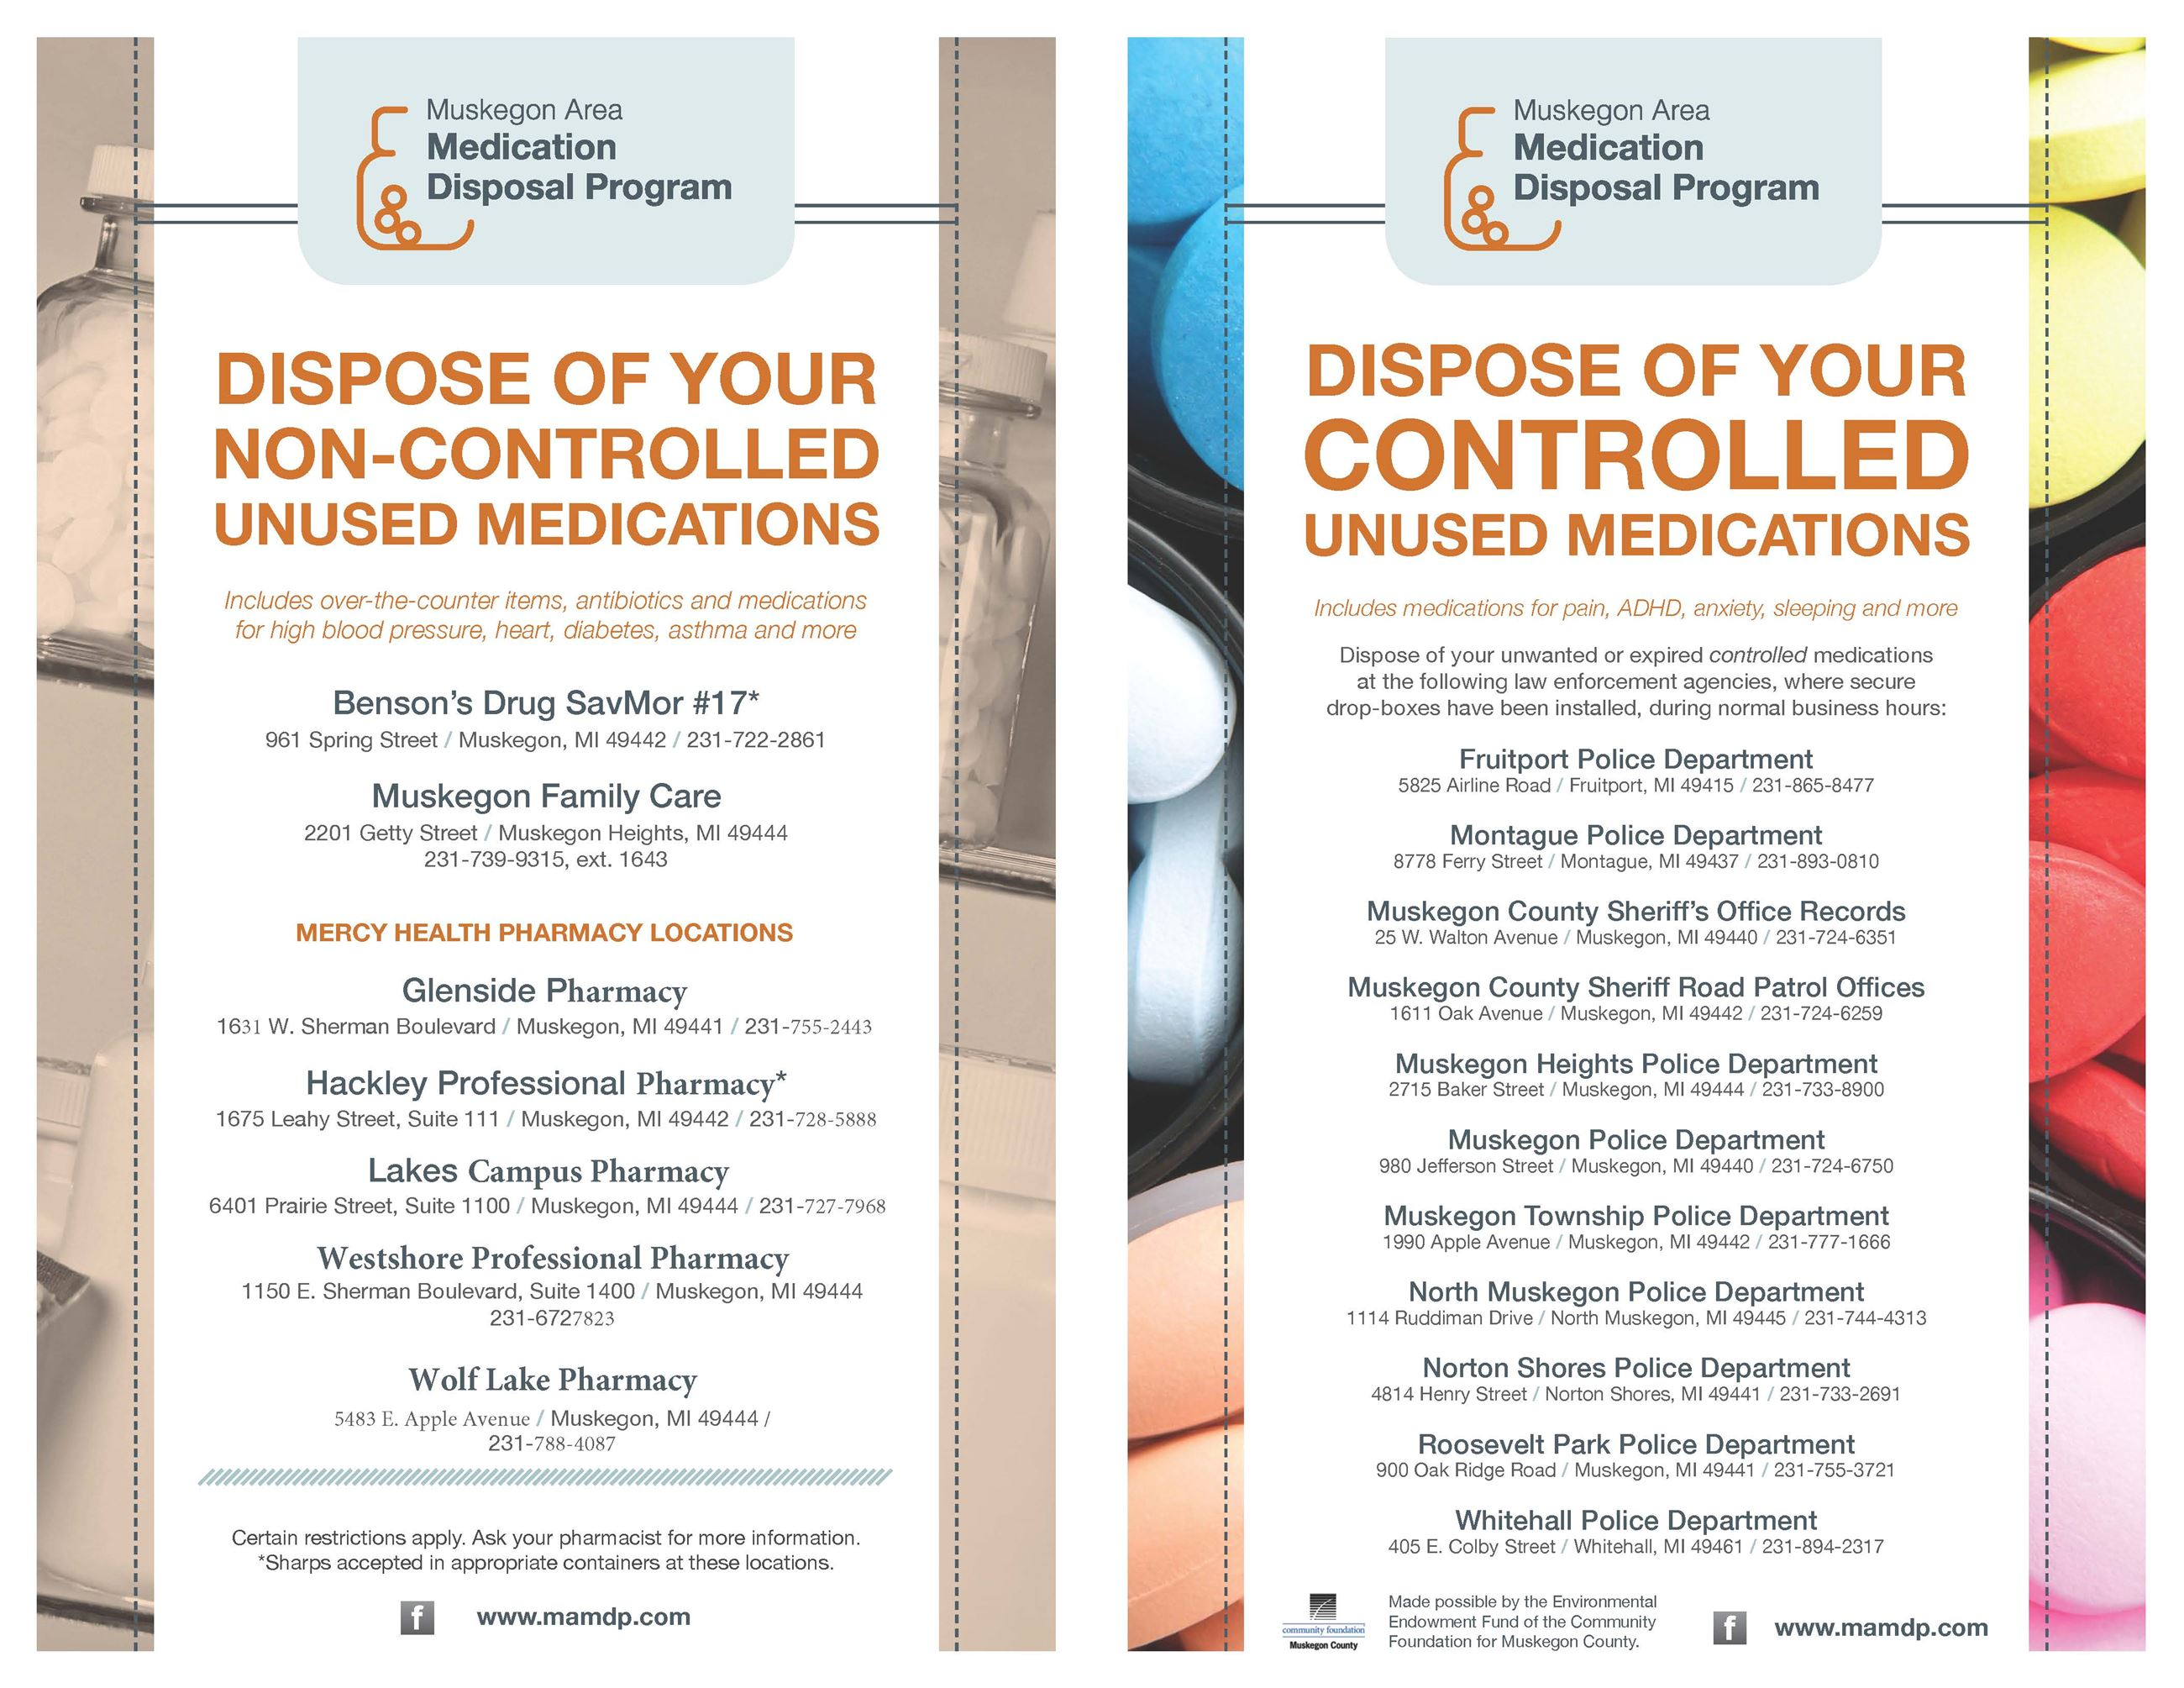 Generic MAMDP disposal flyer